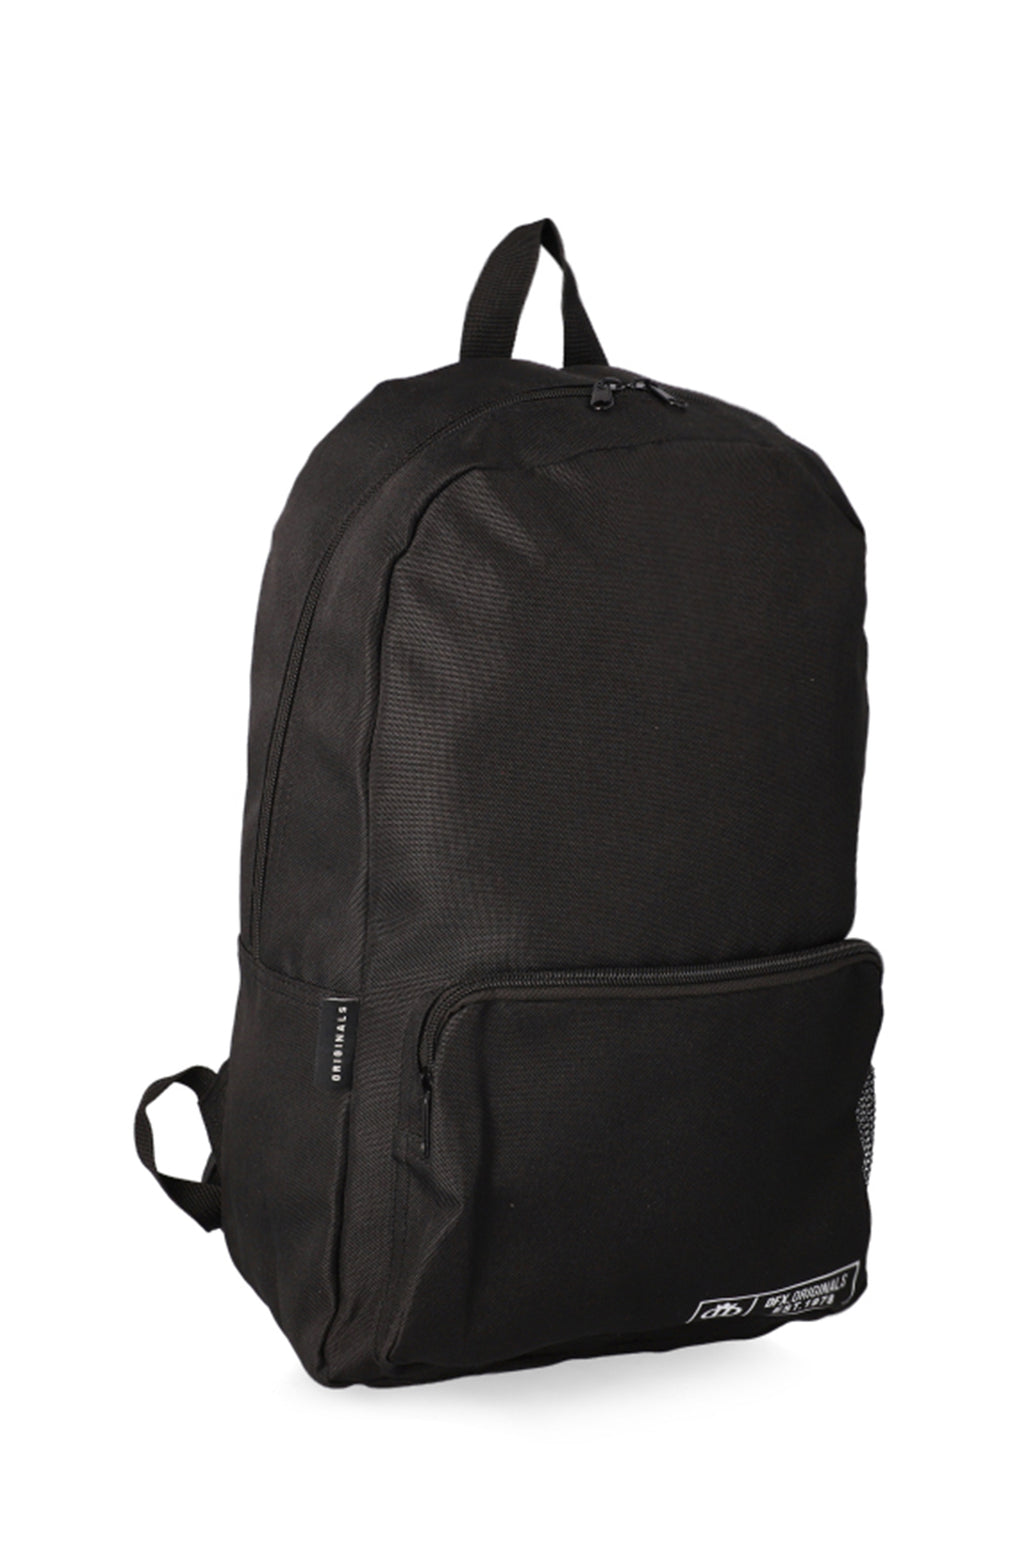 West Bross Backpack _ 118425 _ Black